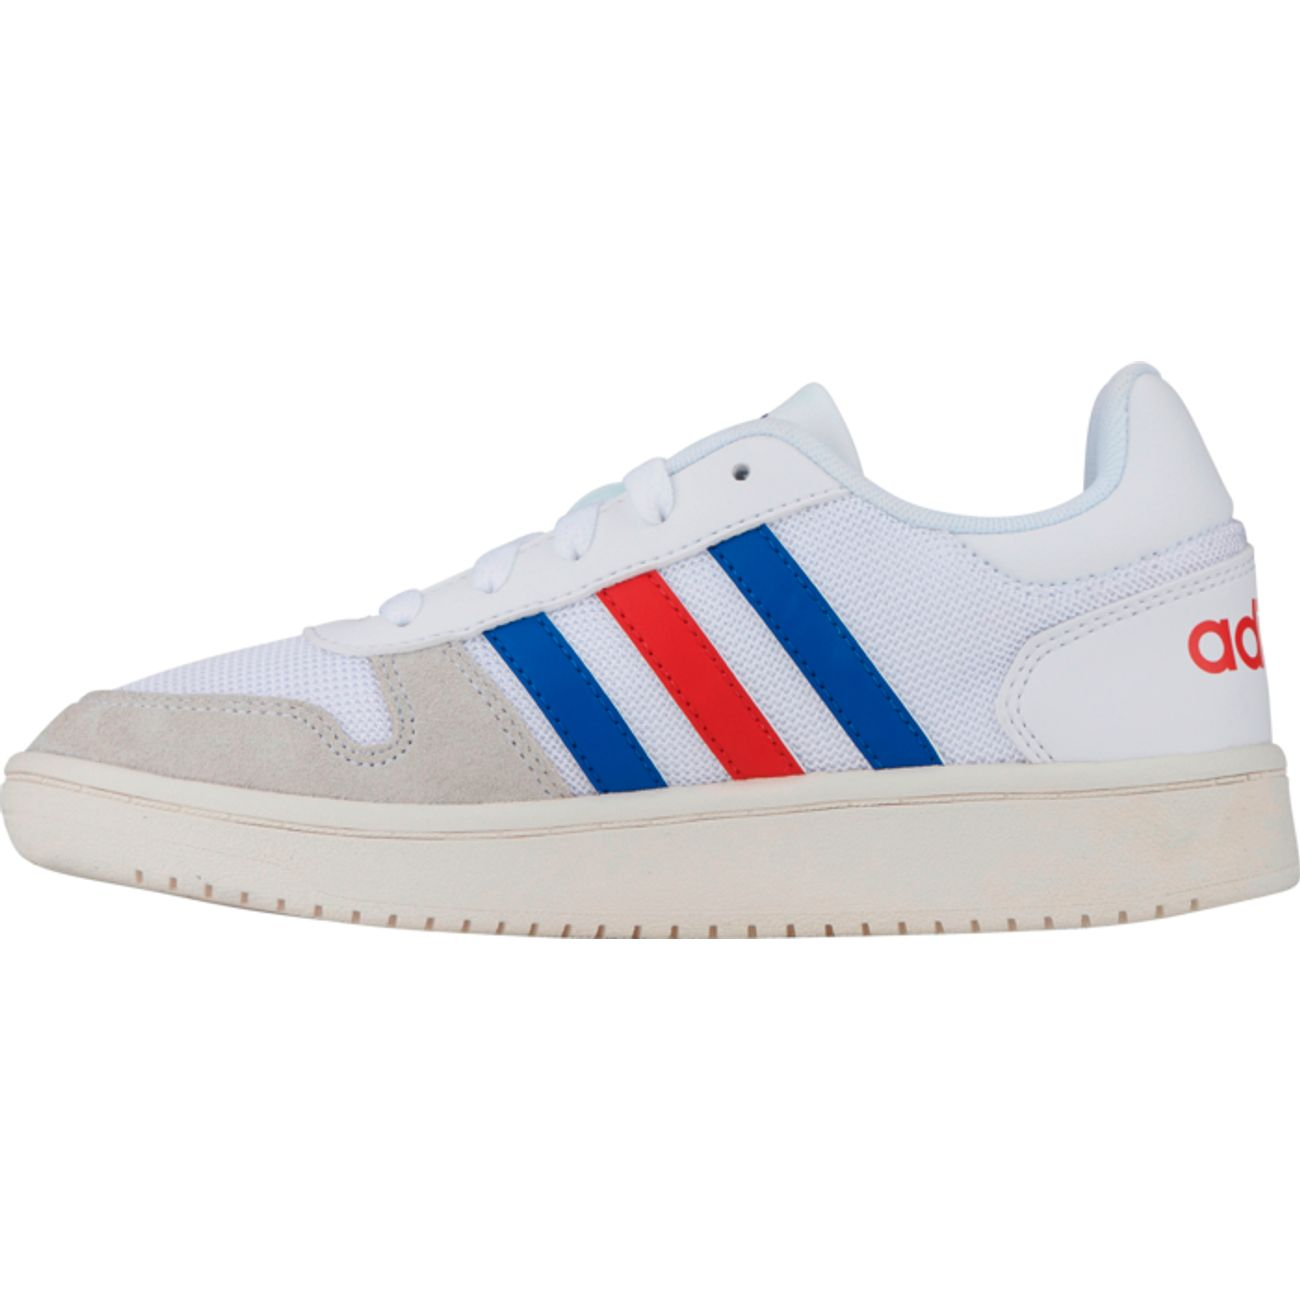 CHAUSSURES BASSES Loisirs enfant ADIDAS HOOPS 2.0 CMF C